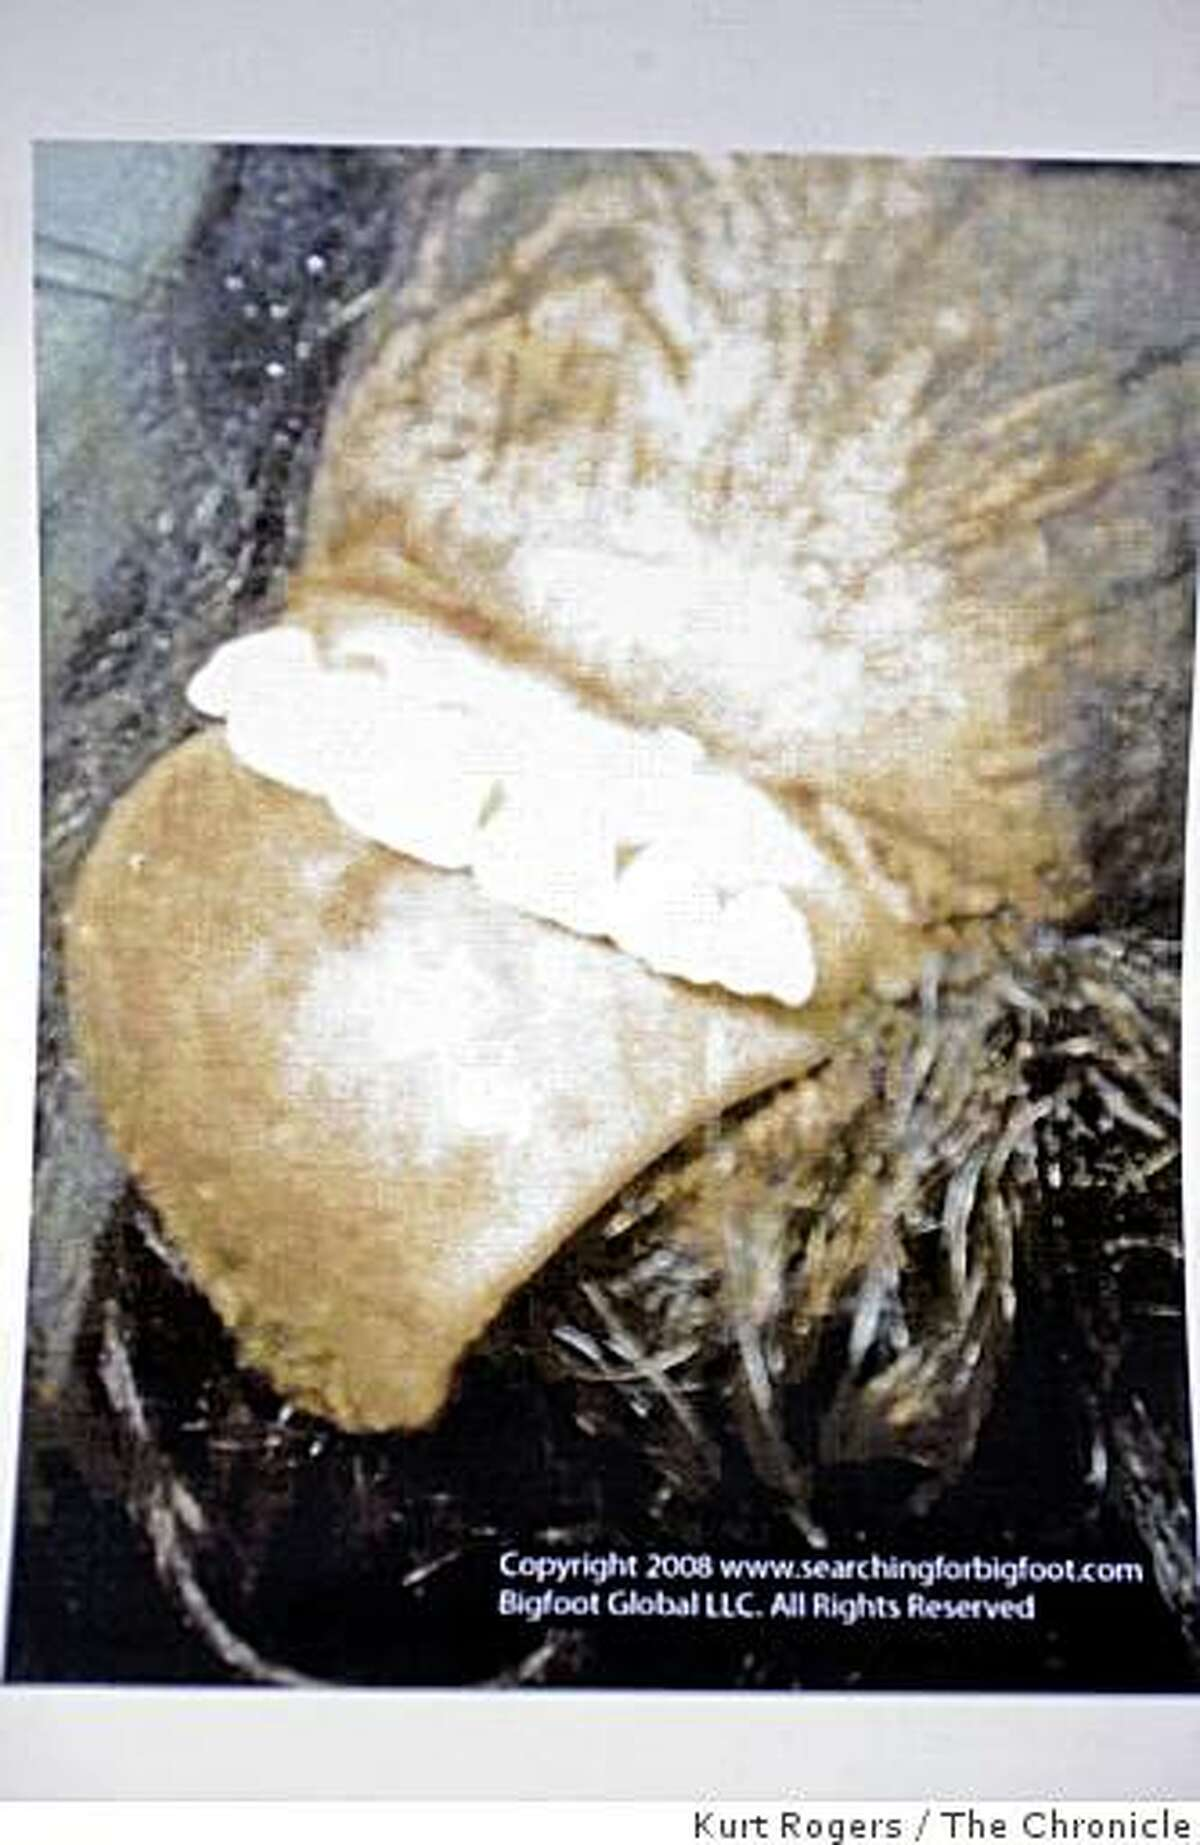 Copy Photo of Bigfoot's teeth and toung. on Friday , Aug 15 2008 in Palo Alto , Calif